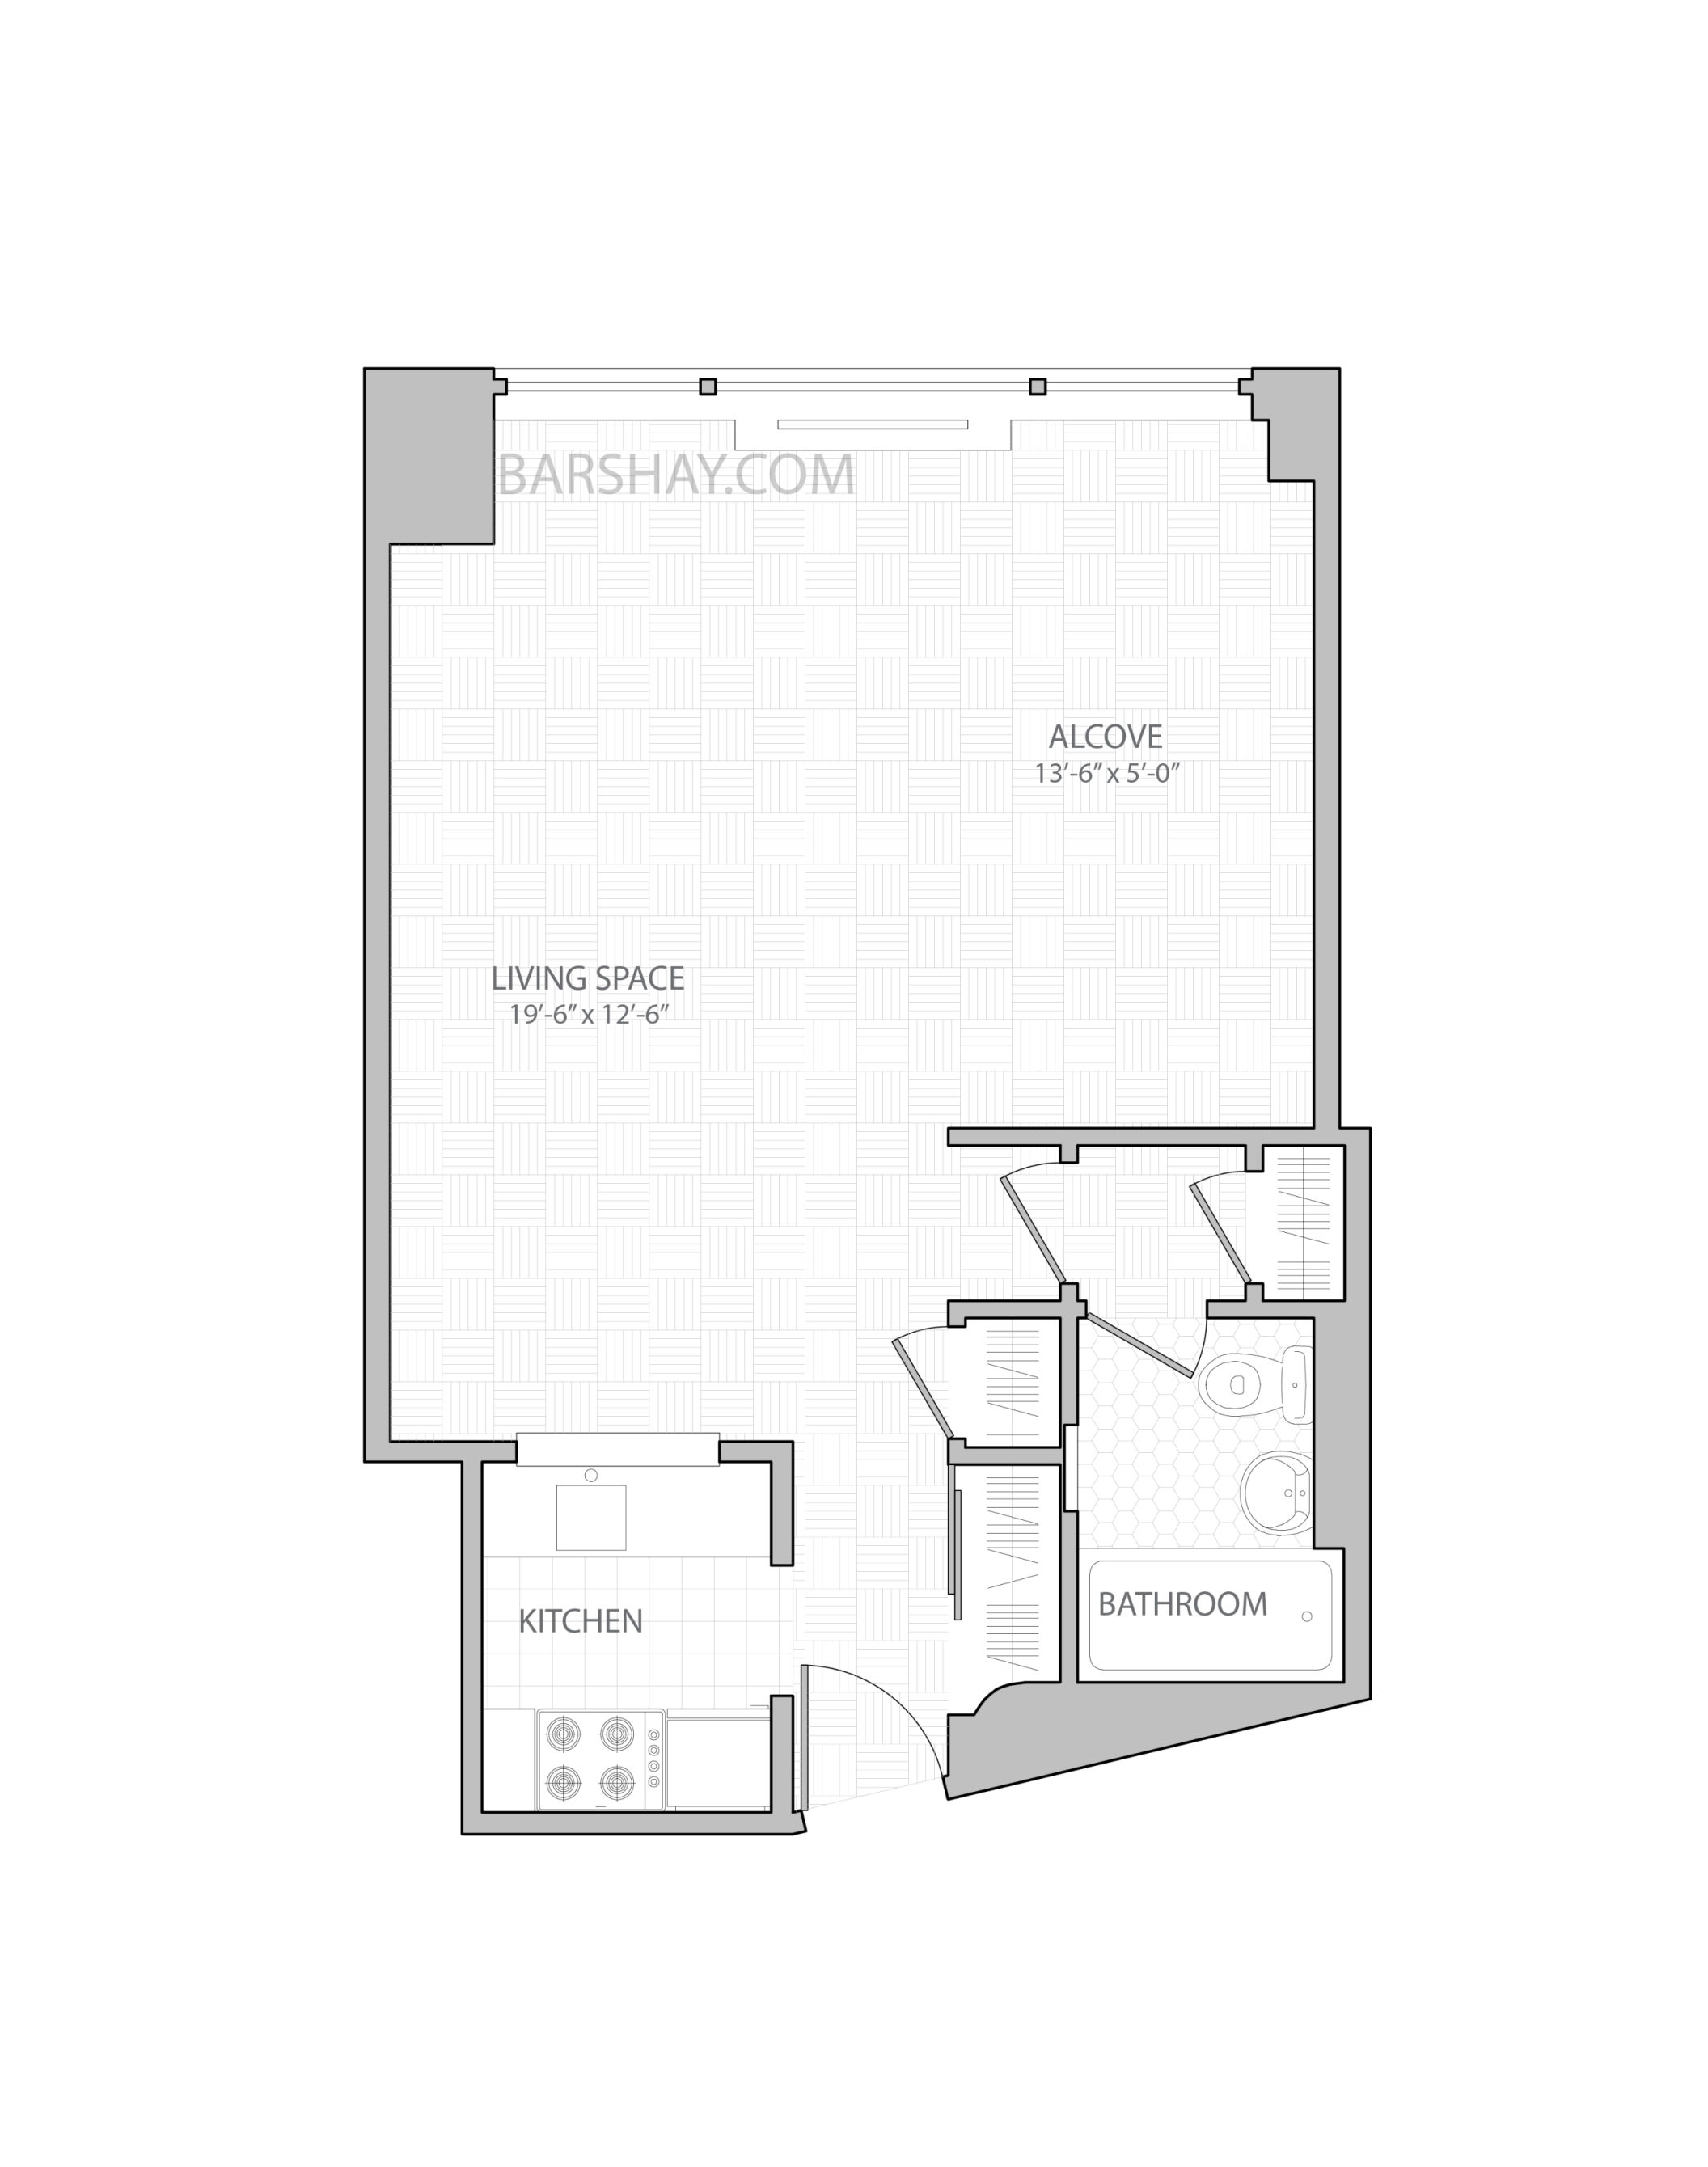 /Users/brettbarshay/Documents/33 Greenwich/7L/7L Plan.dwg